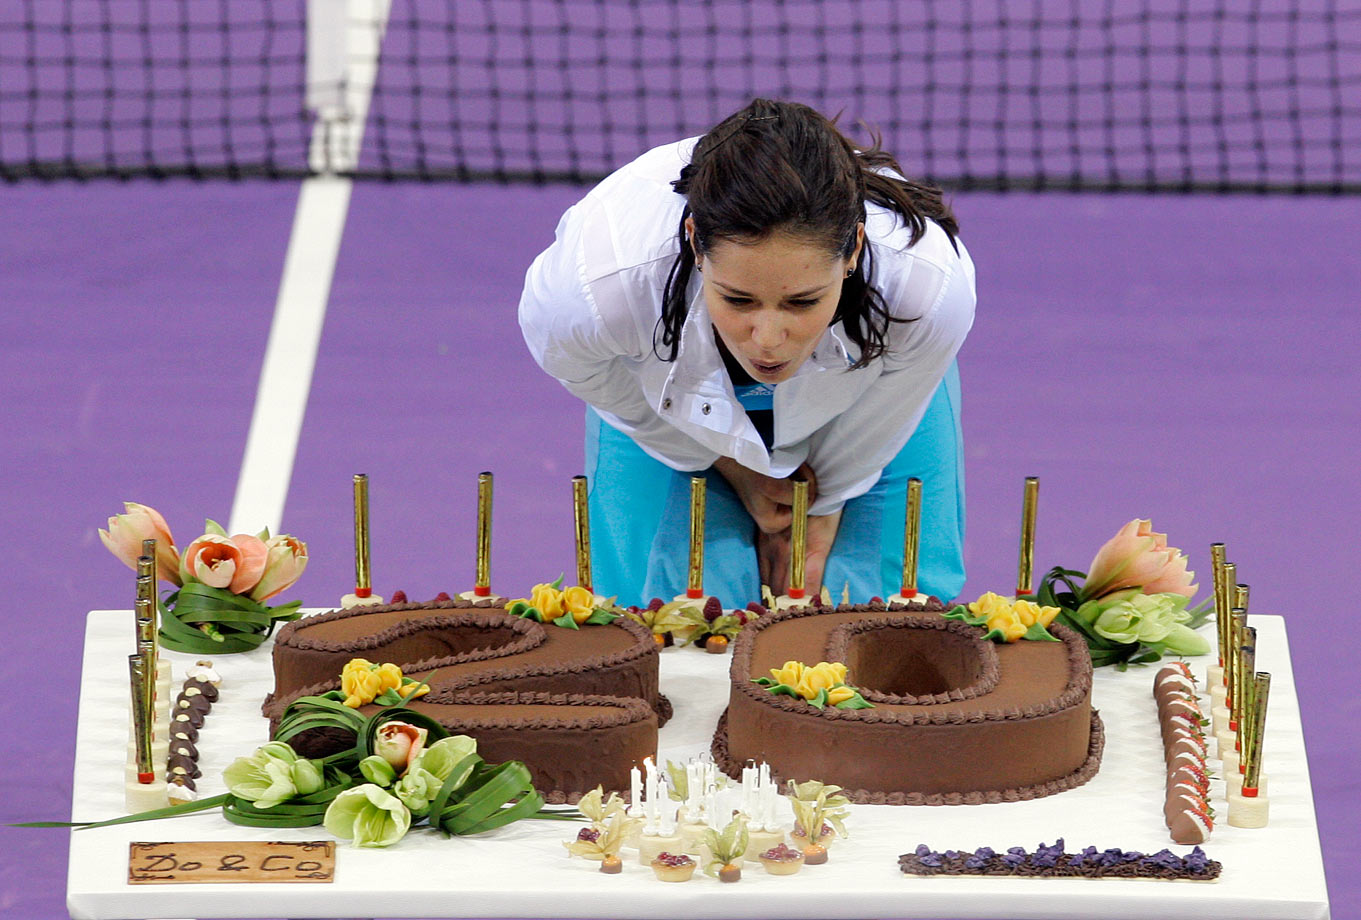 Serbian tennis player Ana Ivanovic was feted for her 20th birthday after beating Svetlana Kuznetsova in the semifinal of the 2007 Sony Ericsson Championships.